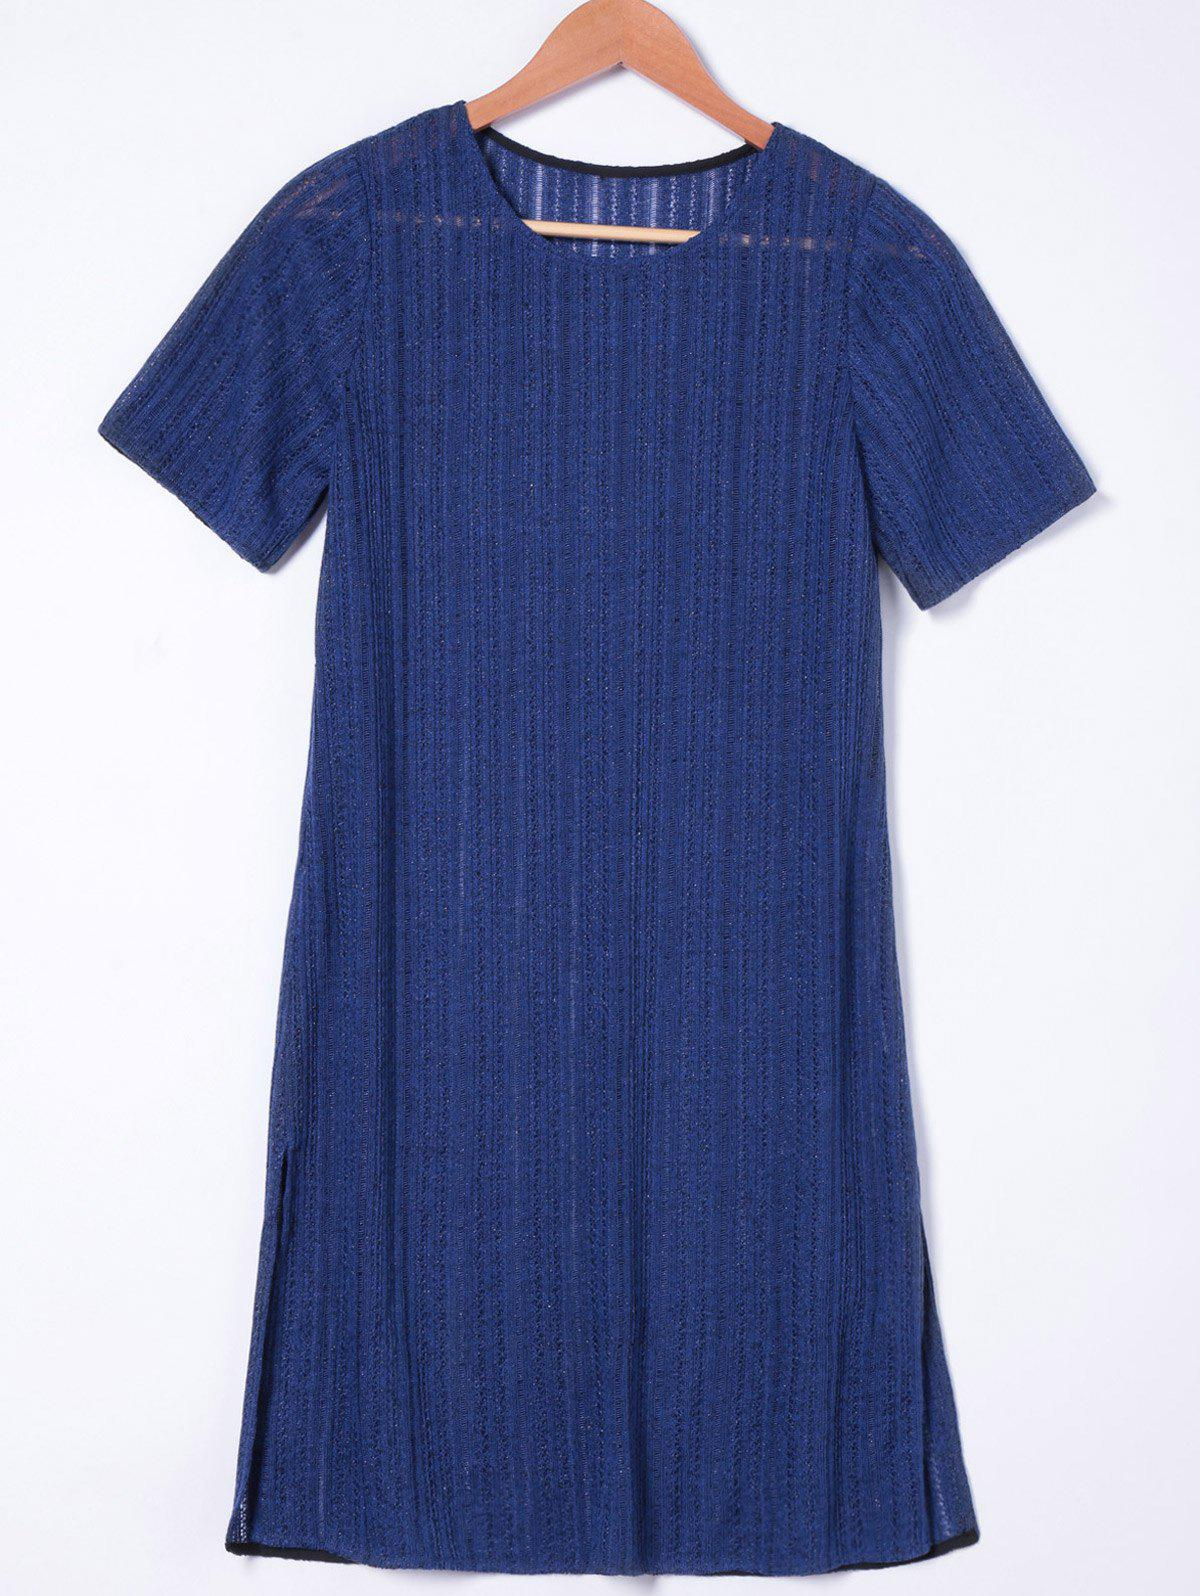 Fashionable Women's Jewel Neck Loose-Fitting Short Sleeves Dress - NAVY BLUE XL